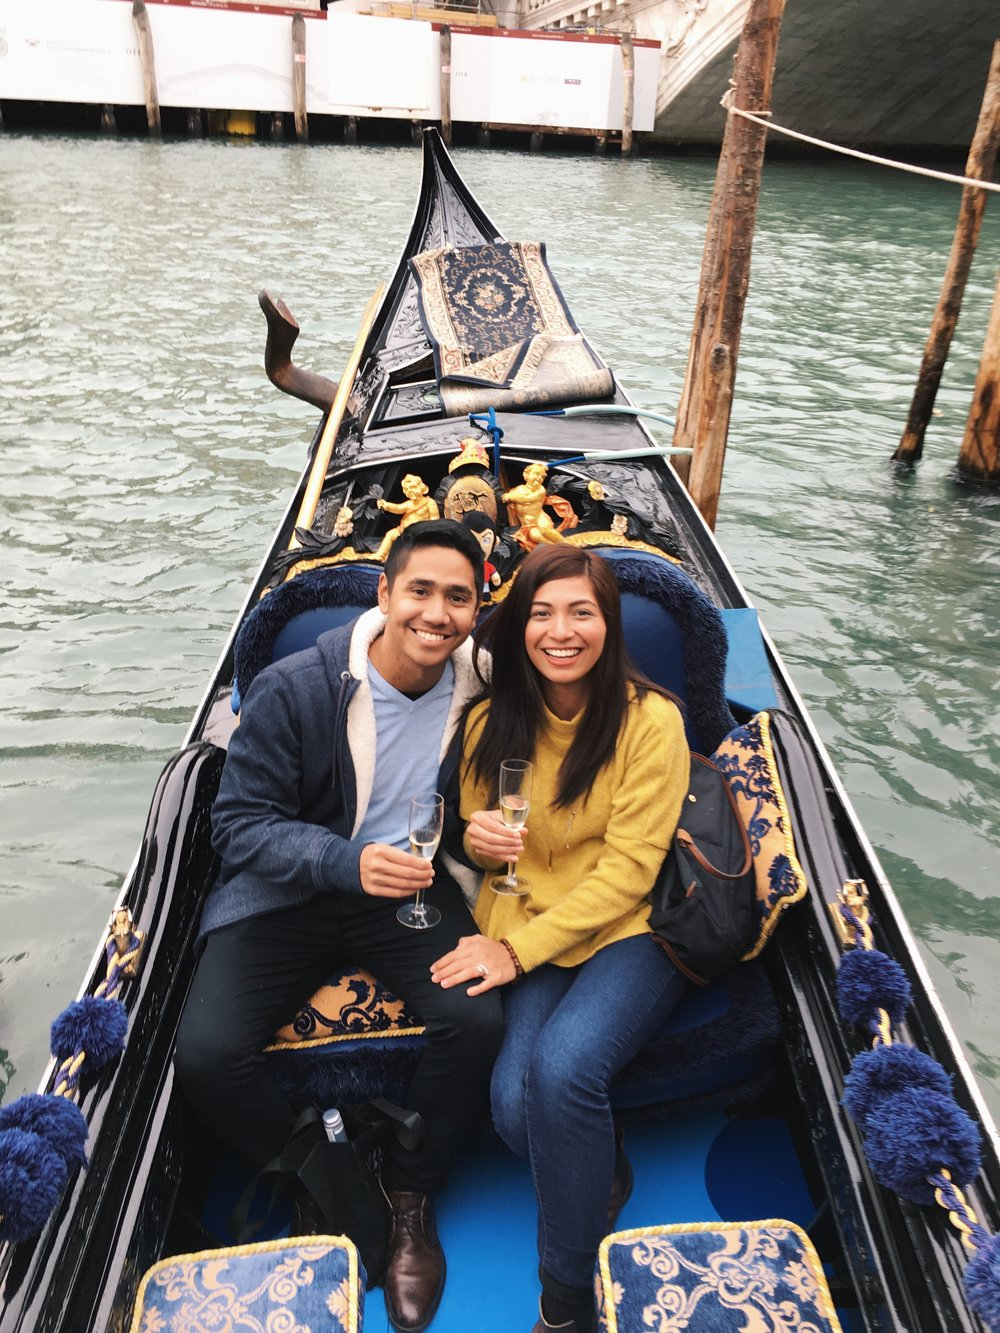 vergs-roxci-couple-gondola-venice